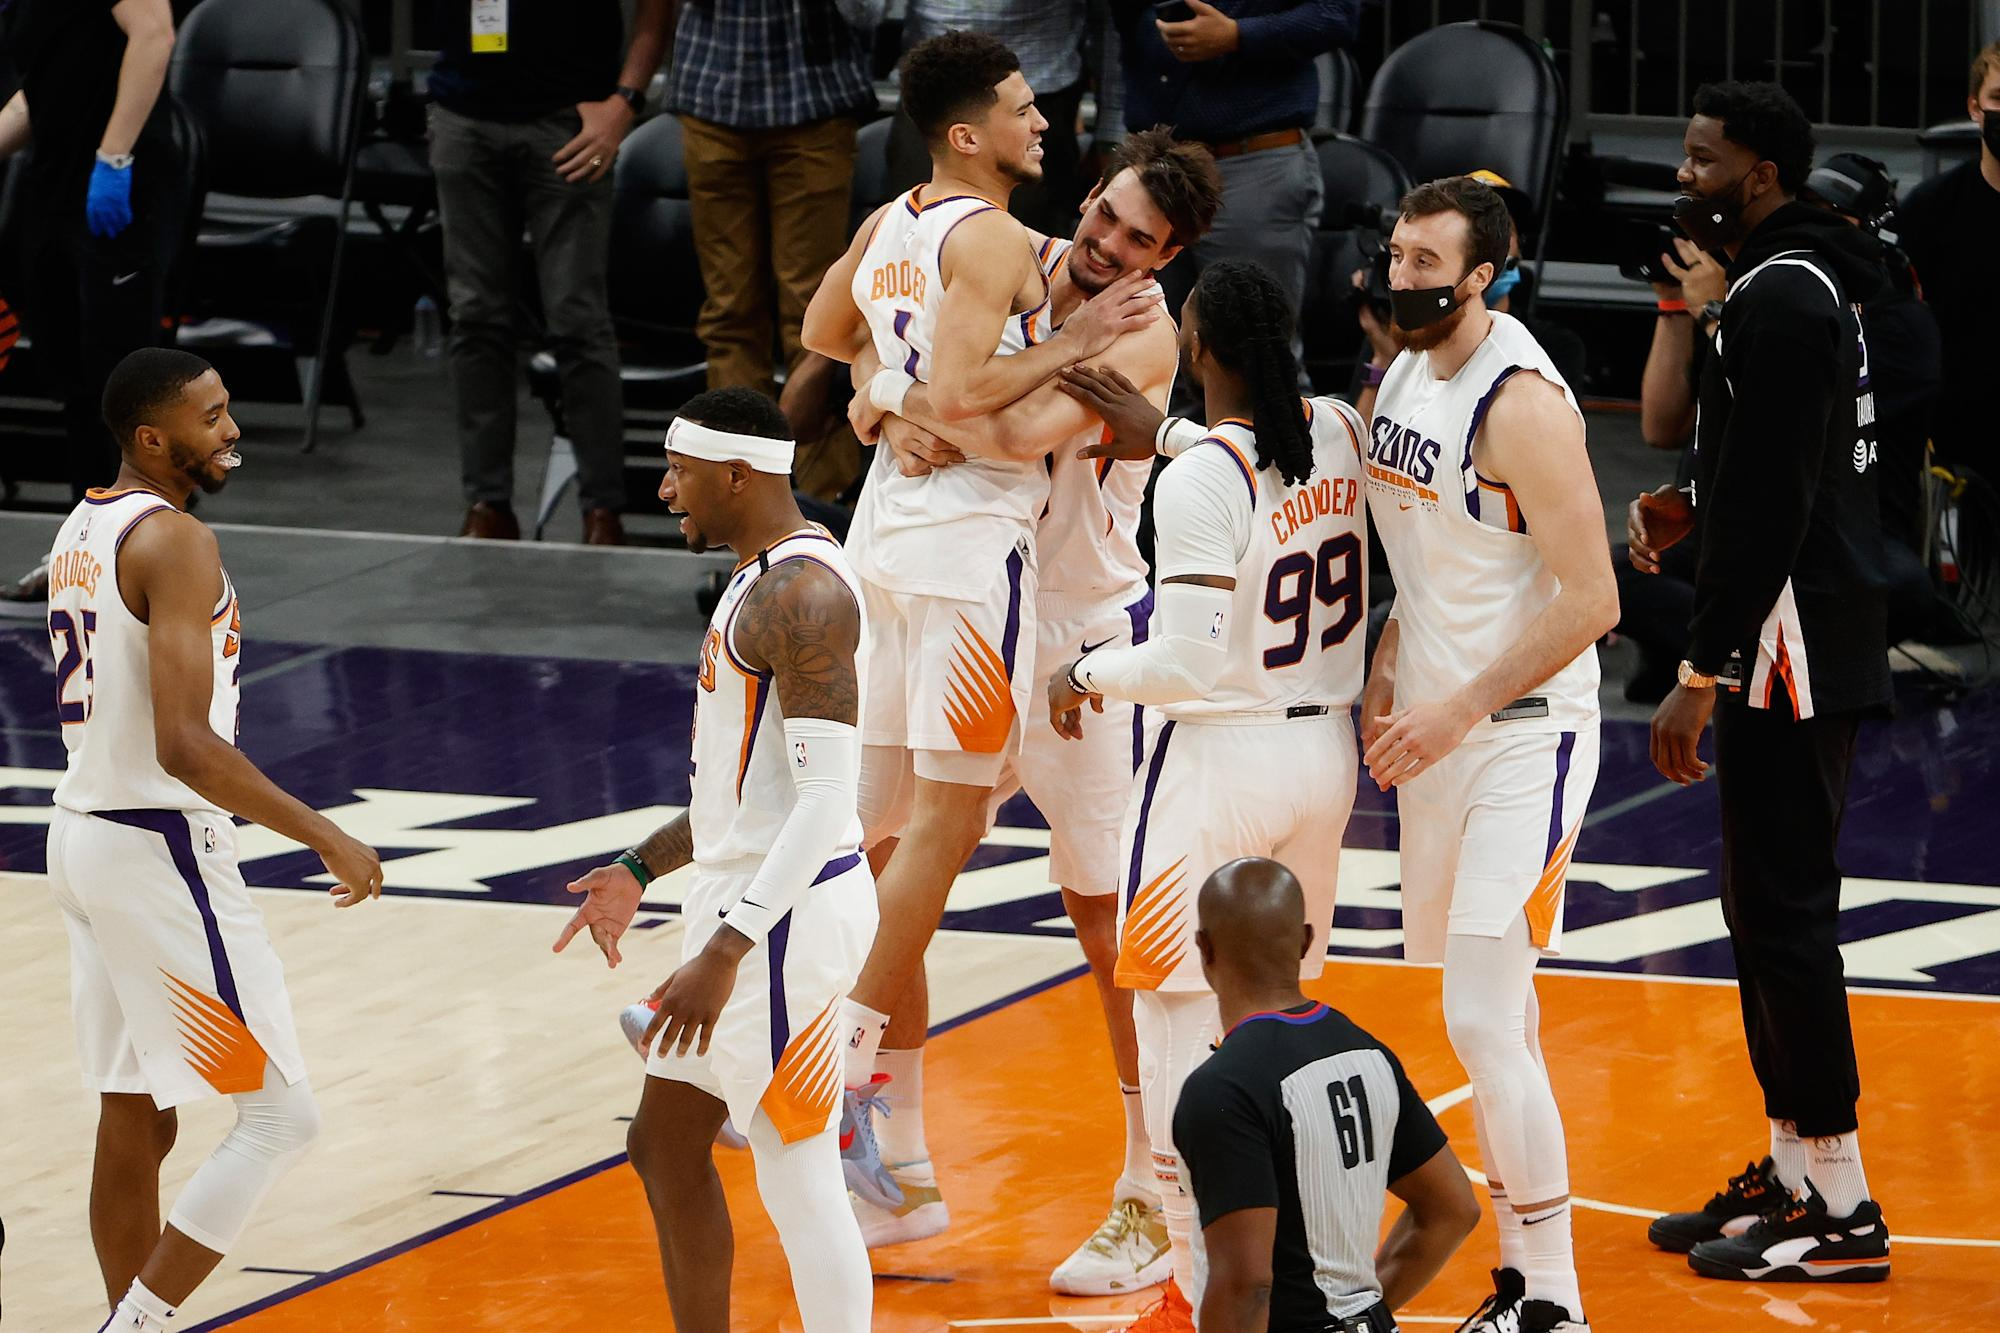 nba-playoff-tracker-late-foul-in-suns-path-blazers-presents-lakers-a-shot-of-averting-play-in-tournament.jpg